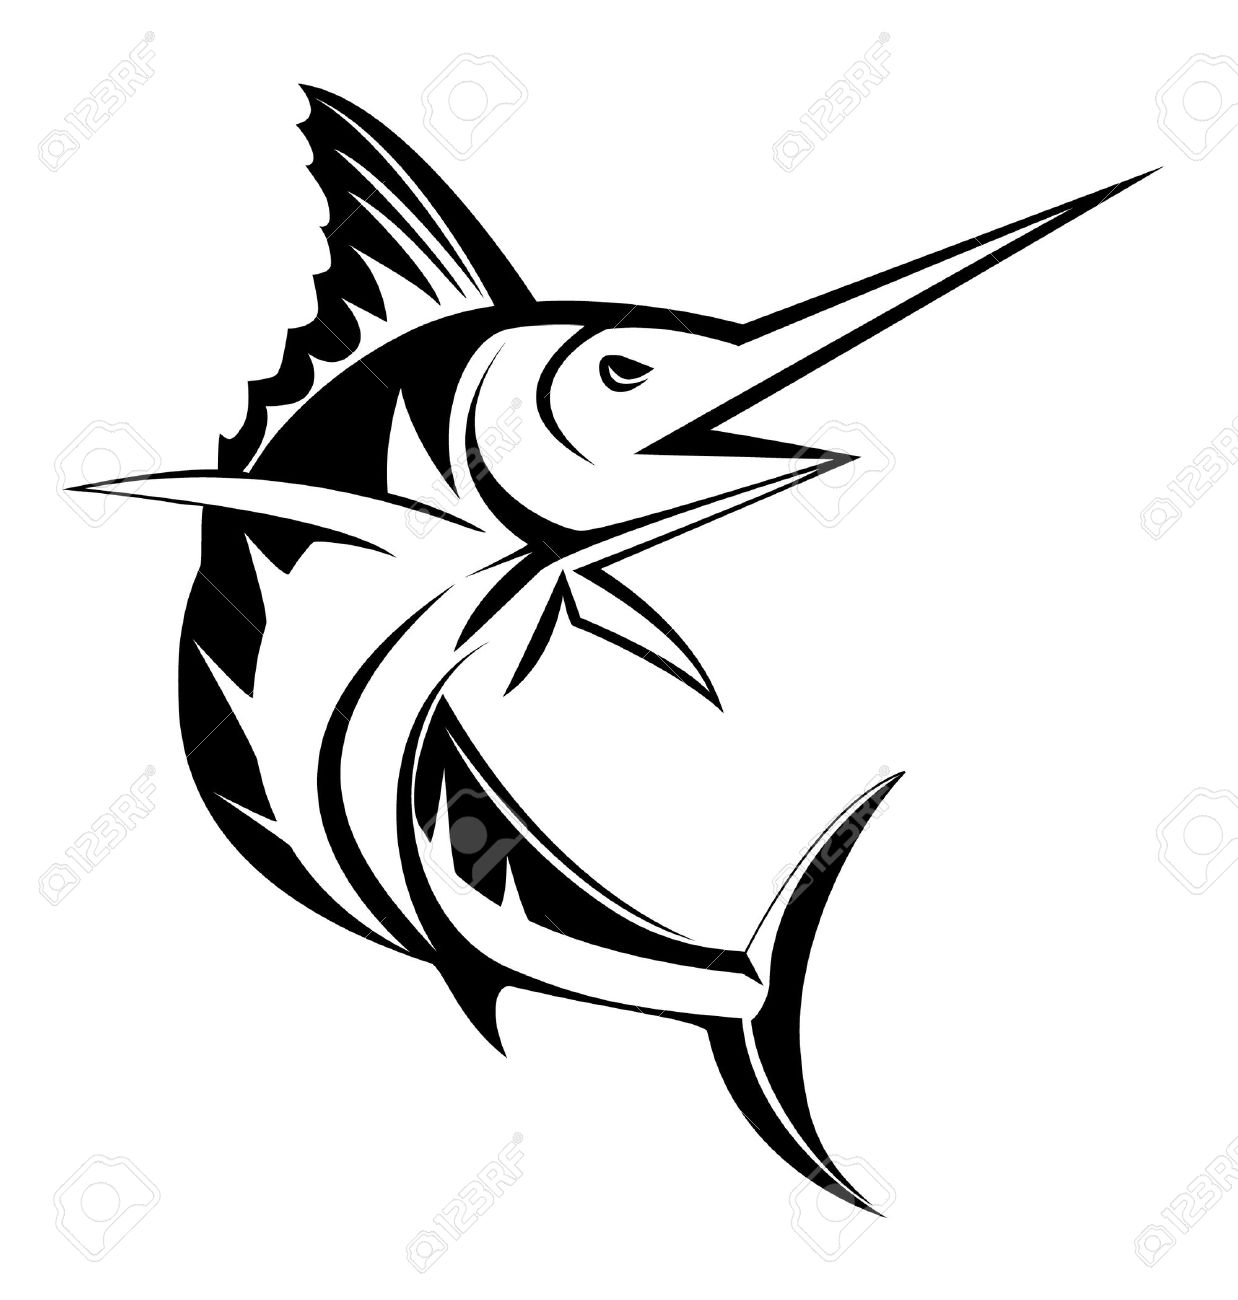 Uncategorized Swordfish Drawing marlin fish royalty free cliparts vectors and stock illustration vector 14968235